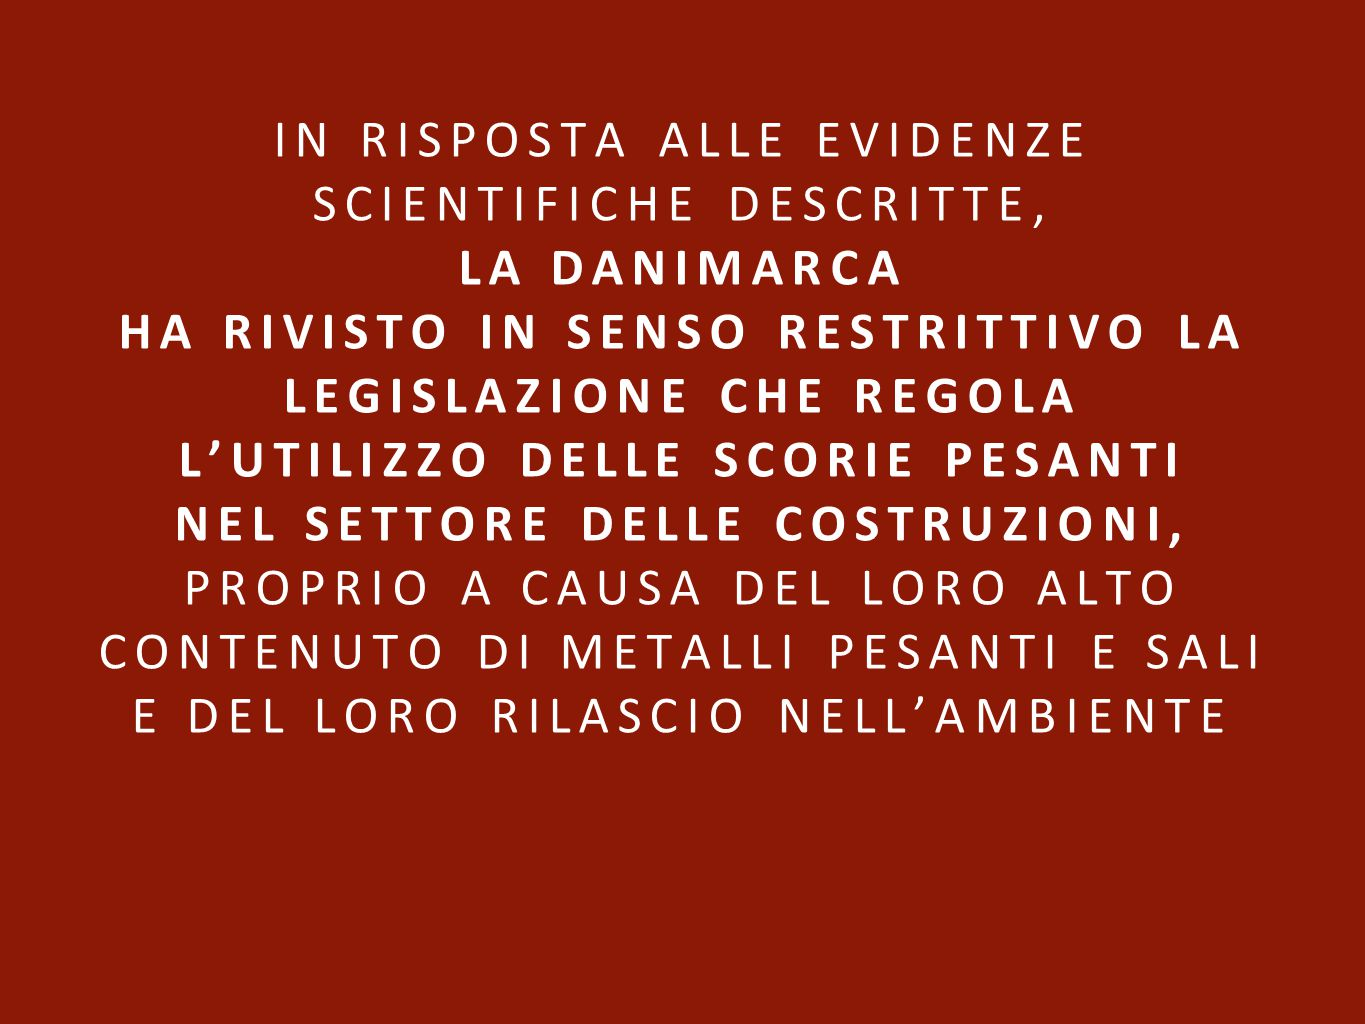 In risposta alle evidenze scientifiche descritte,